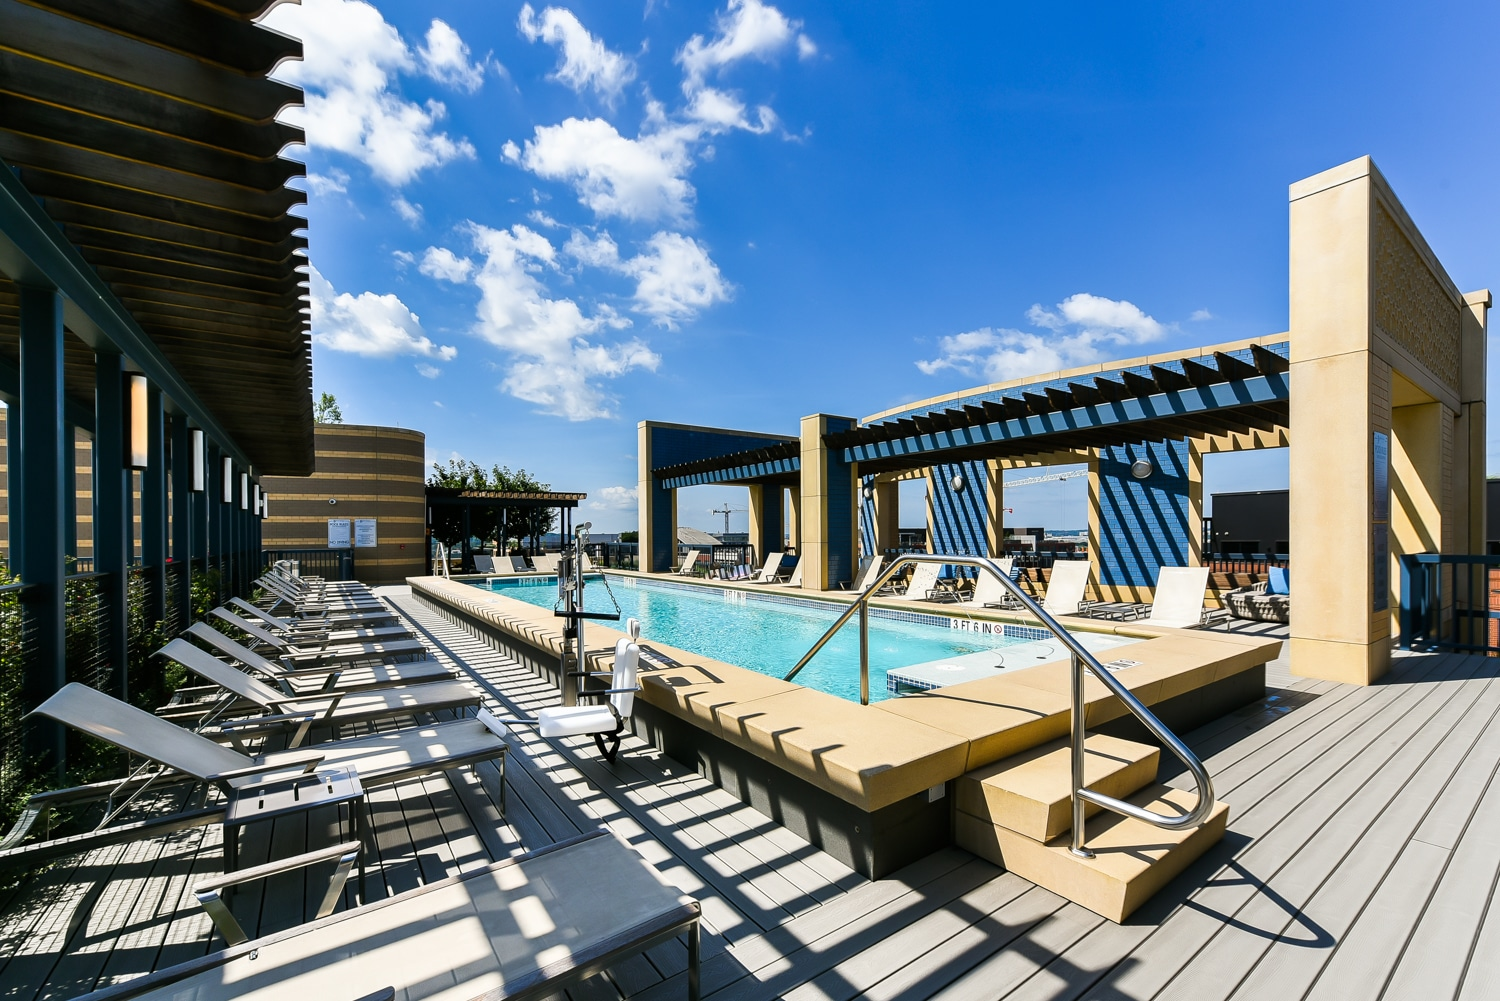 The-Collective-Pool-Roof-Top-Washington-Dc